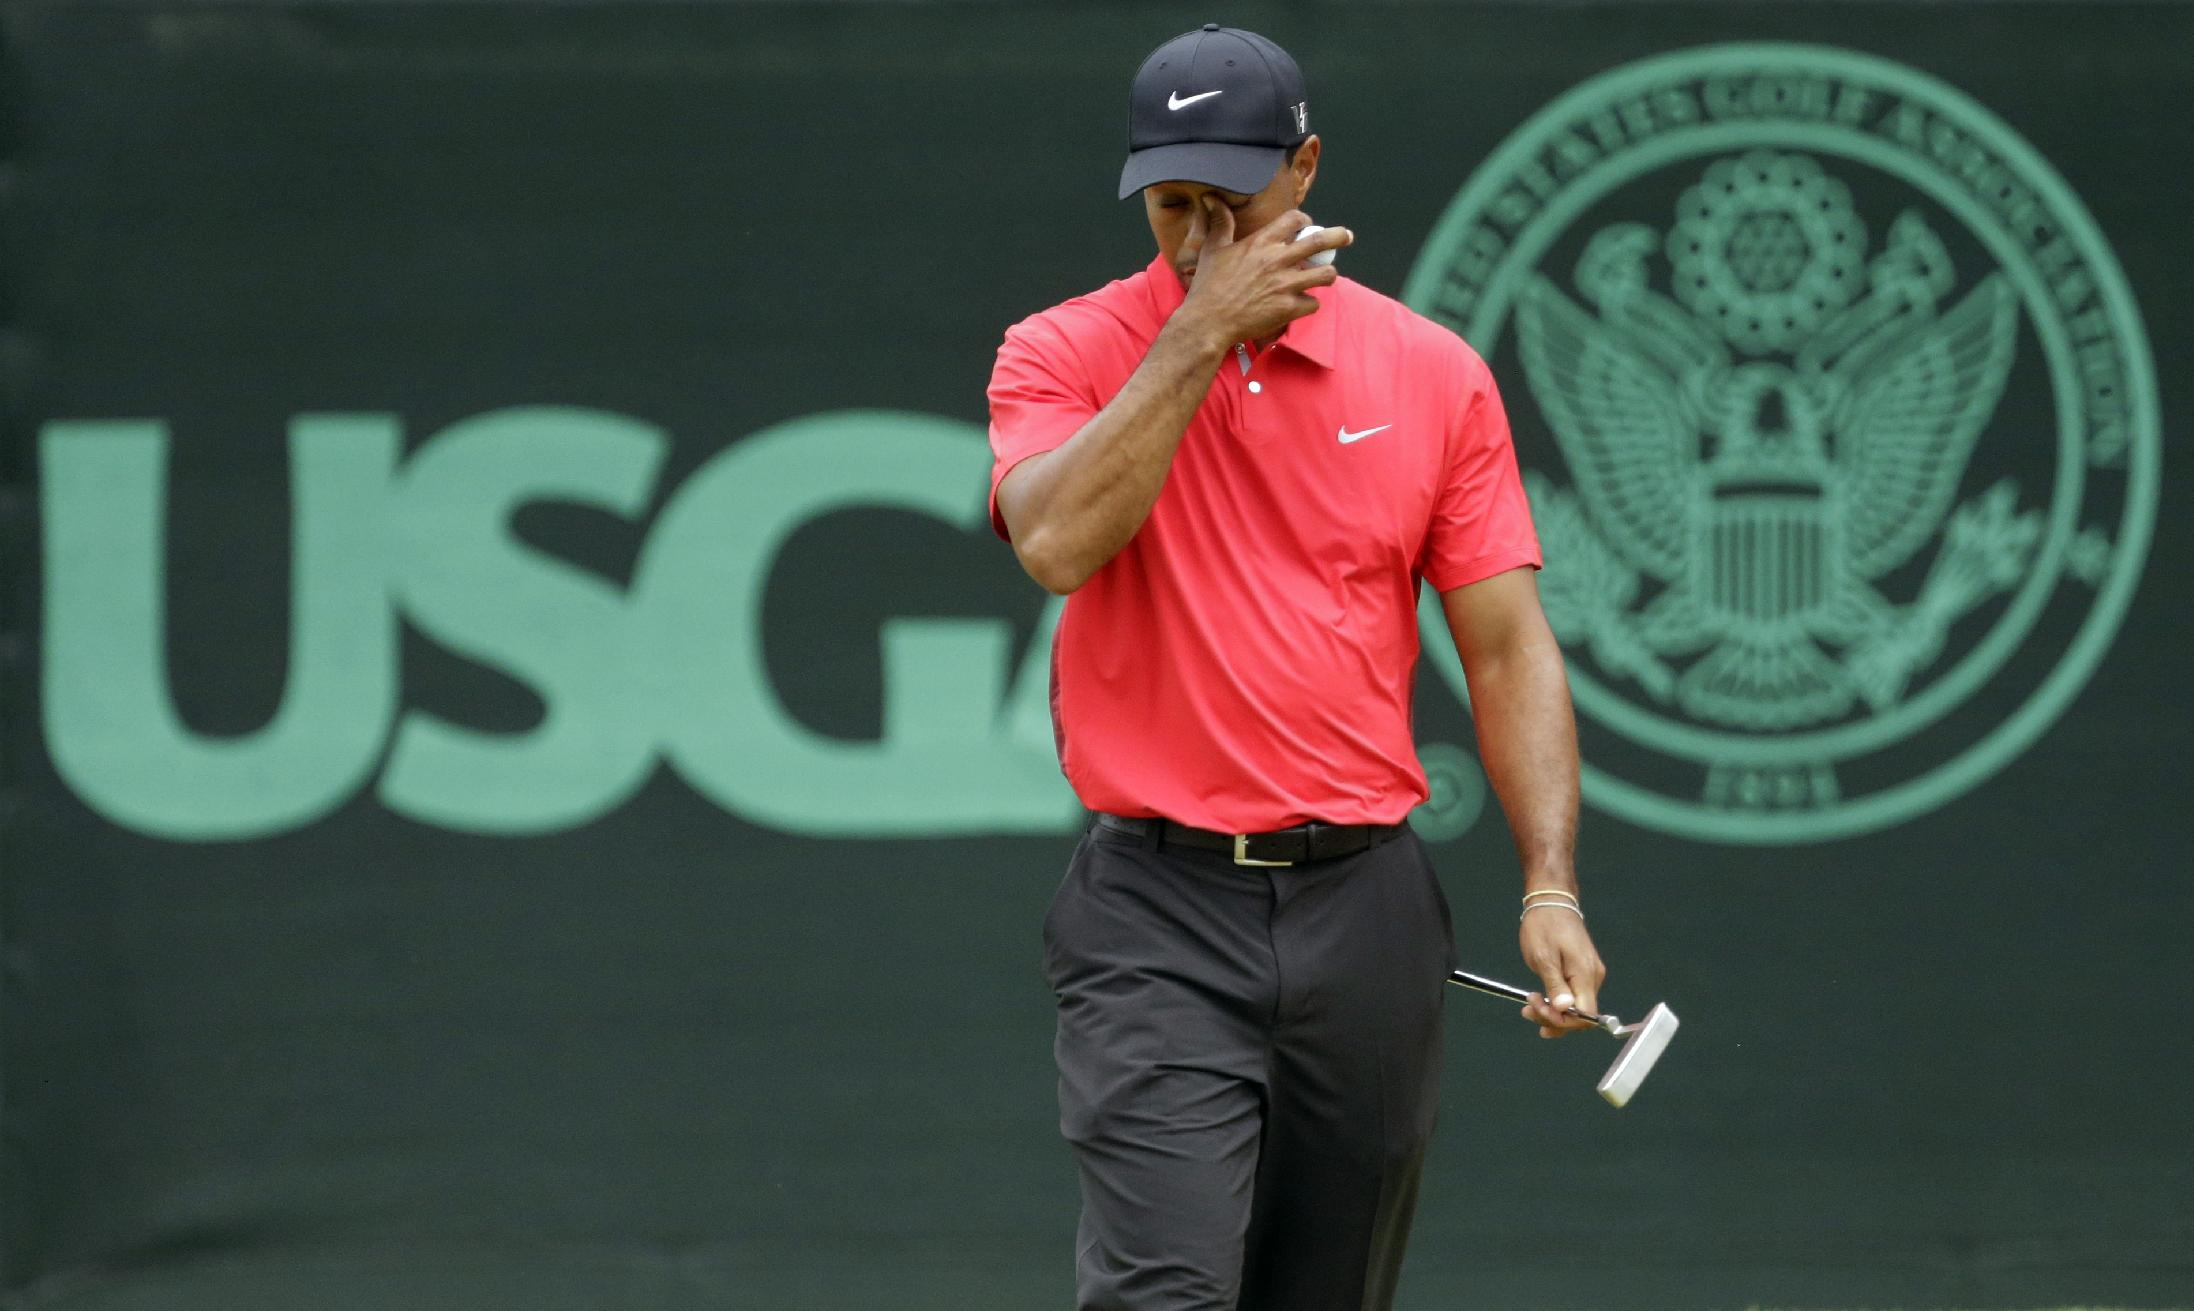 Tiger Woods reacts after putting on the eighth green at the U.S. Open. (AP)